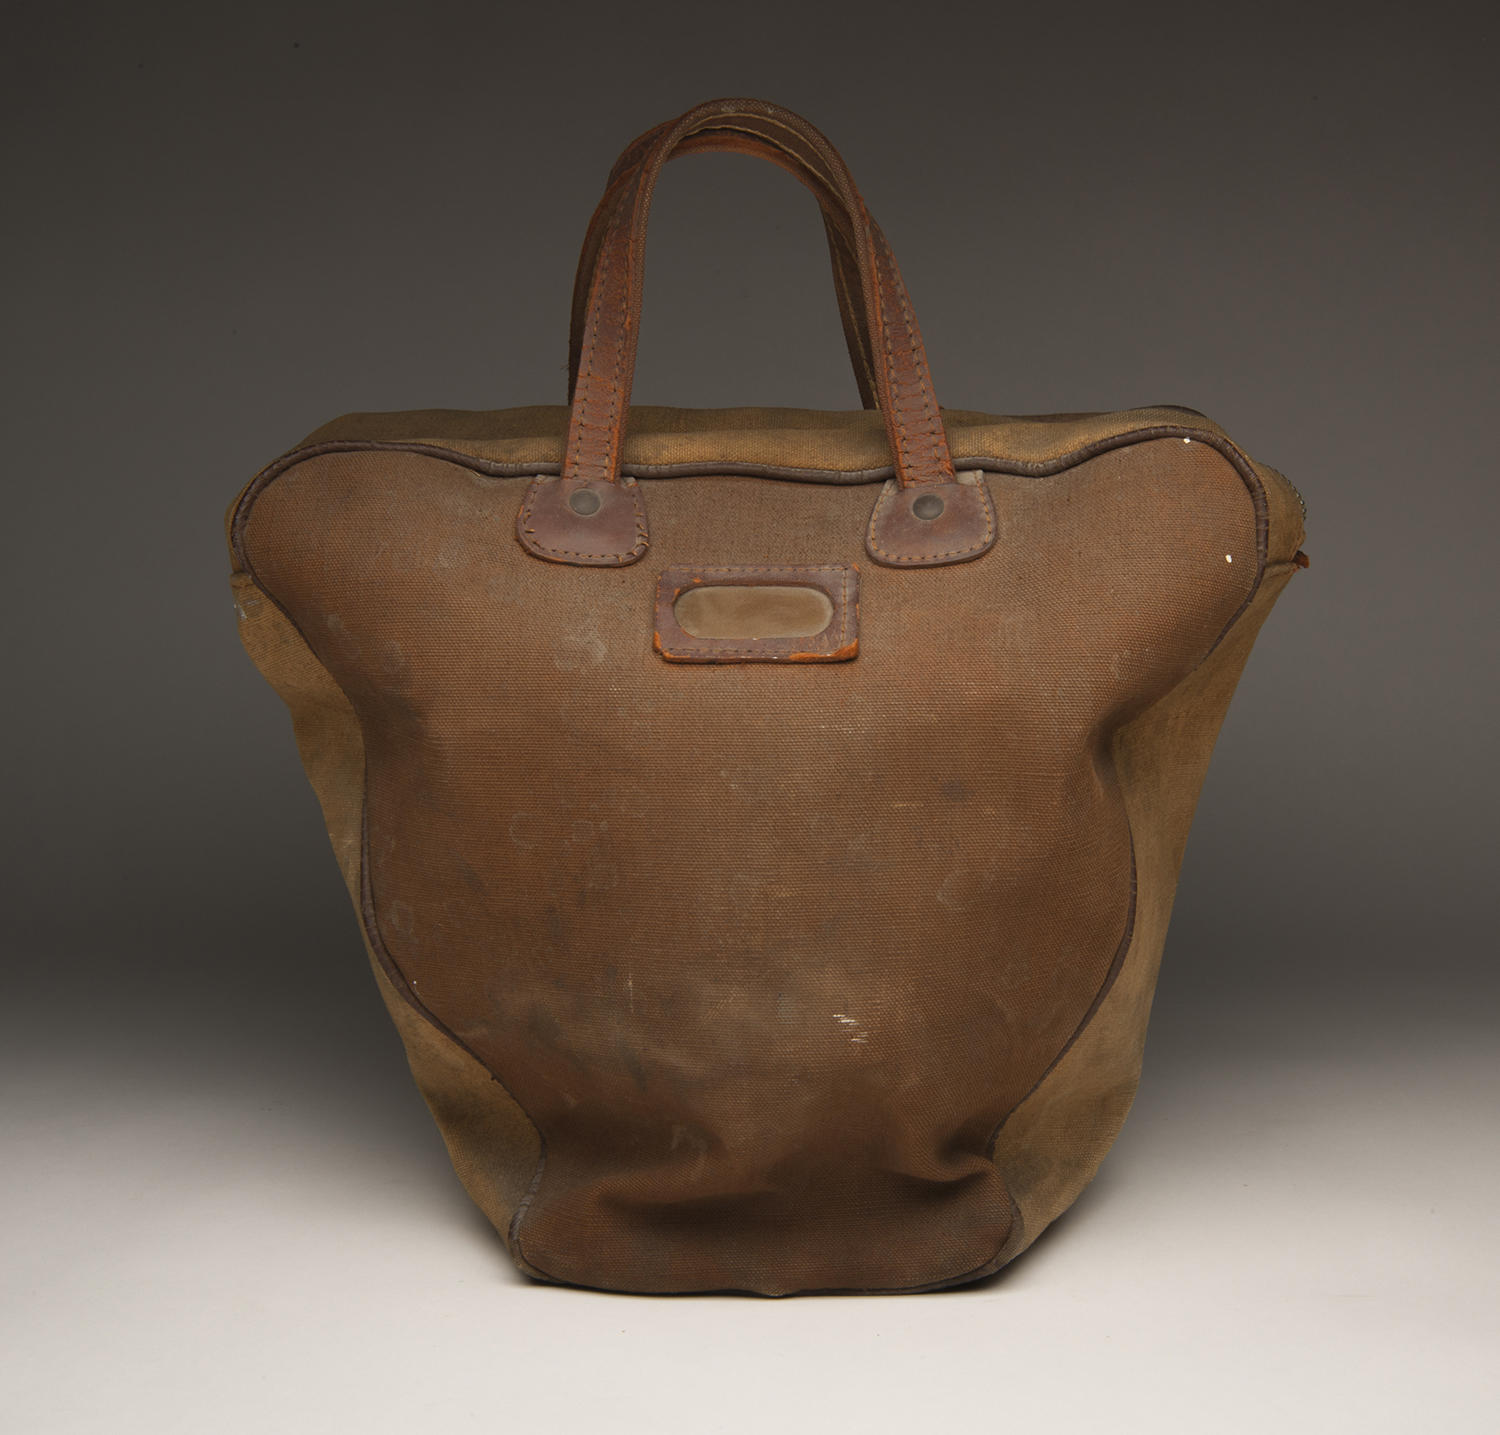 One of two bowling balls with accompanying bags in the Museum collection, this bowling bag needs conservation treatment. (Milo Stewart Jr. / National Baseball Hall of Fame and Museum)